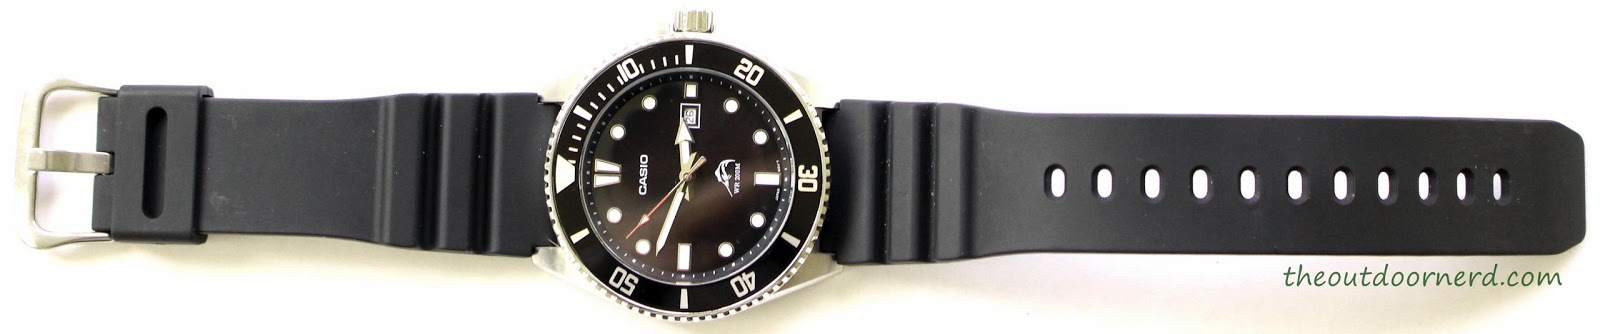 Casio MDV106-1A Diver's Watch: Shown Lengthwise